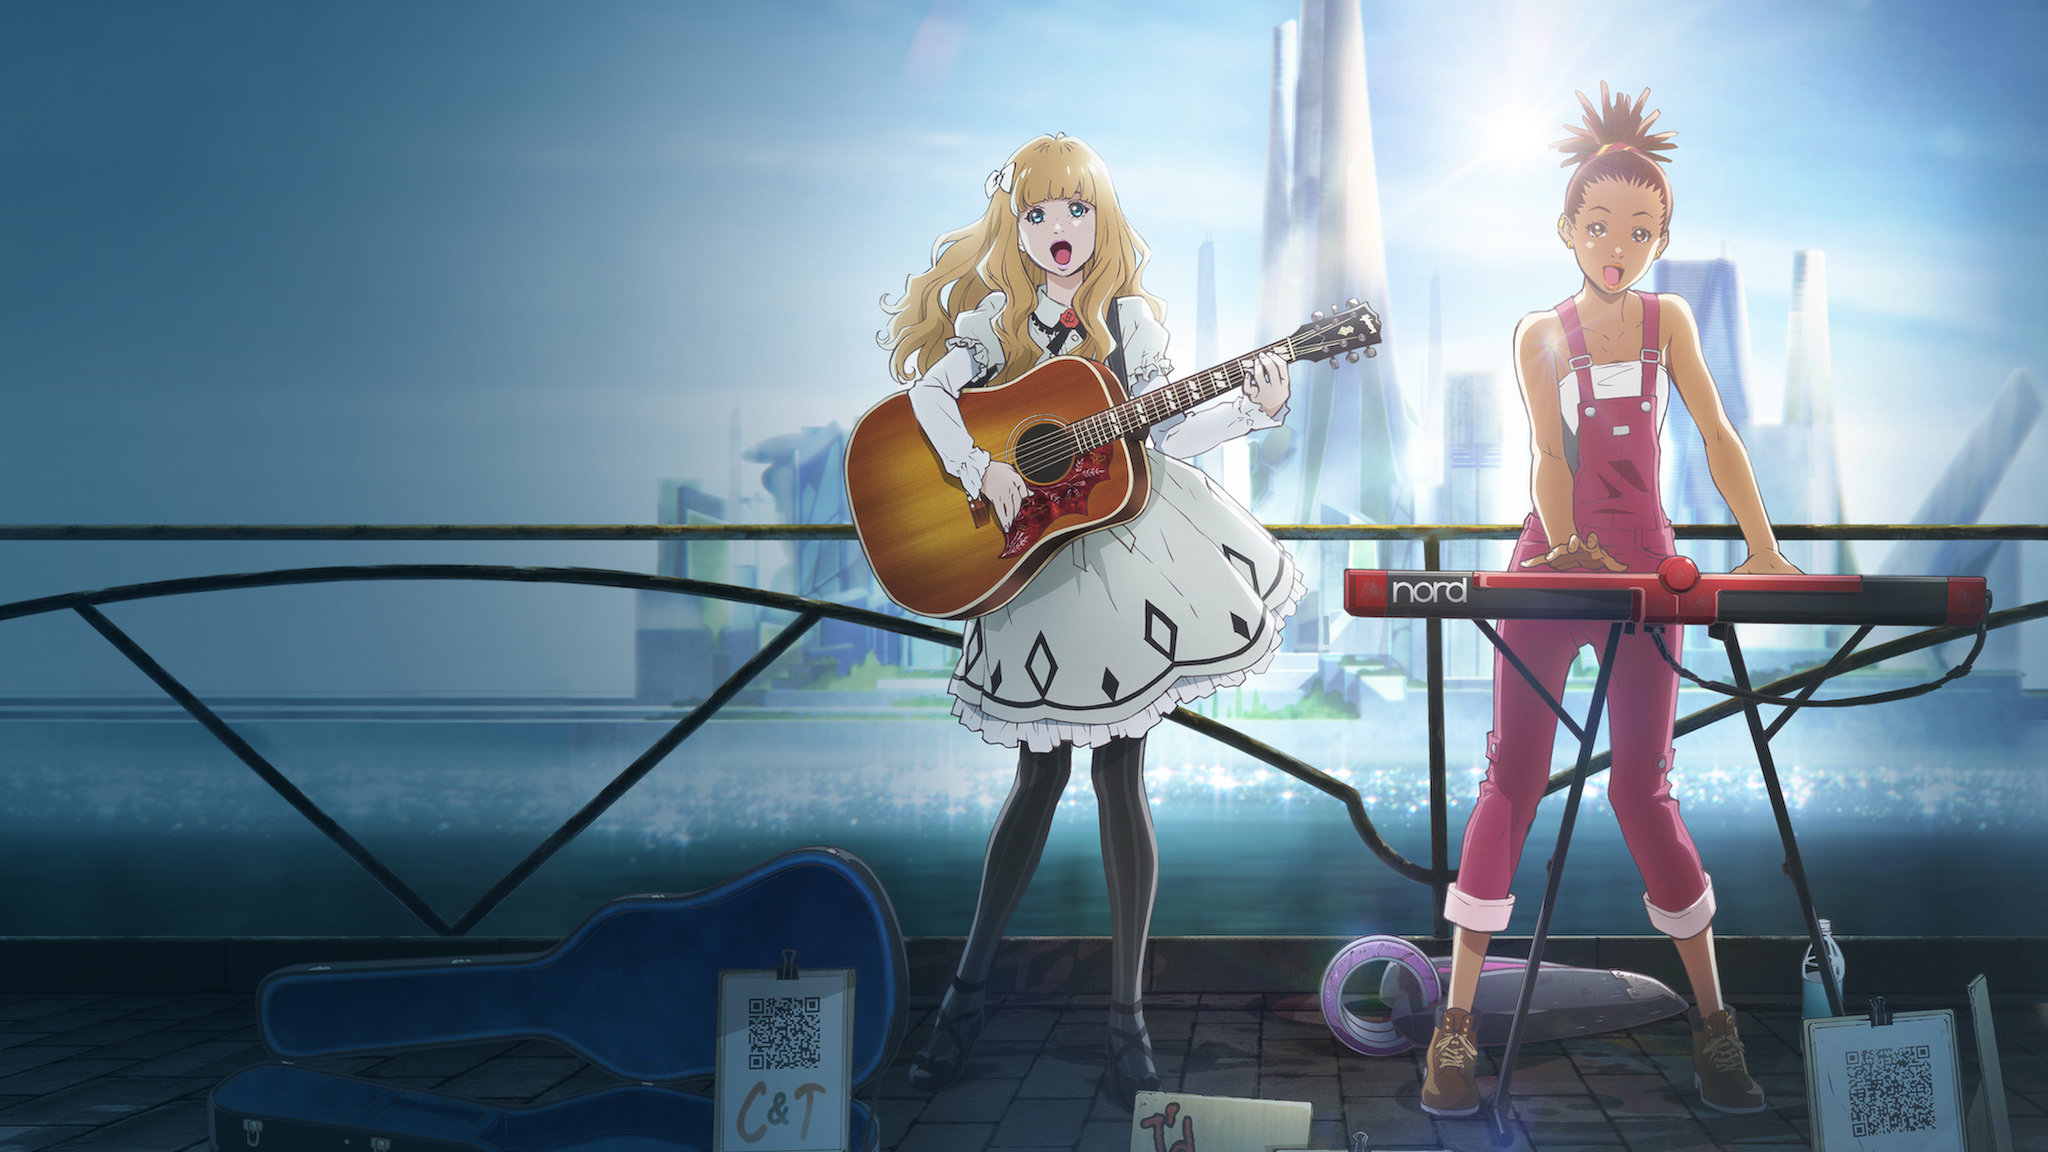 Carole & Tuesday HD Wallpaper | Background Image | 2048x1152 | ID:1118775 - Wallpaper Abyss